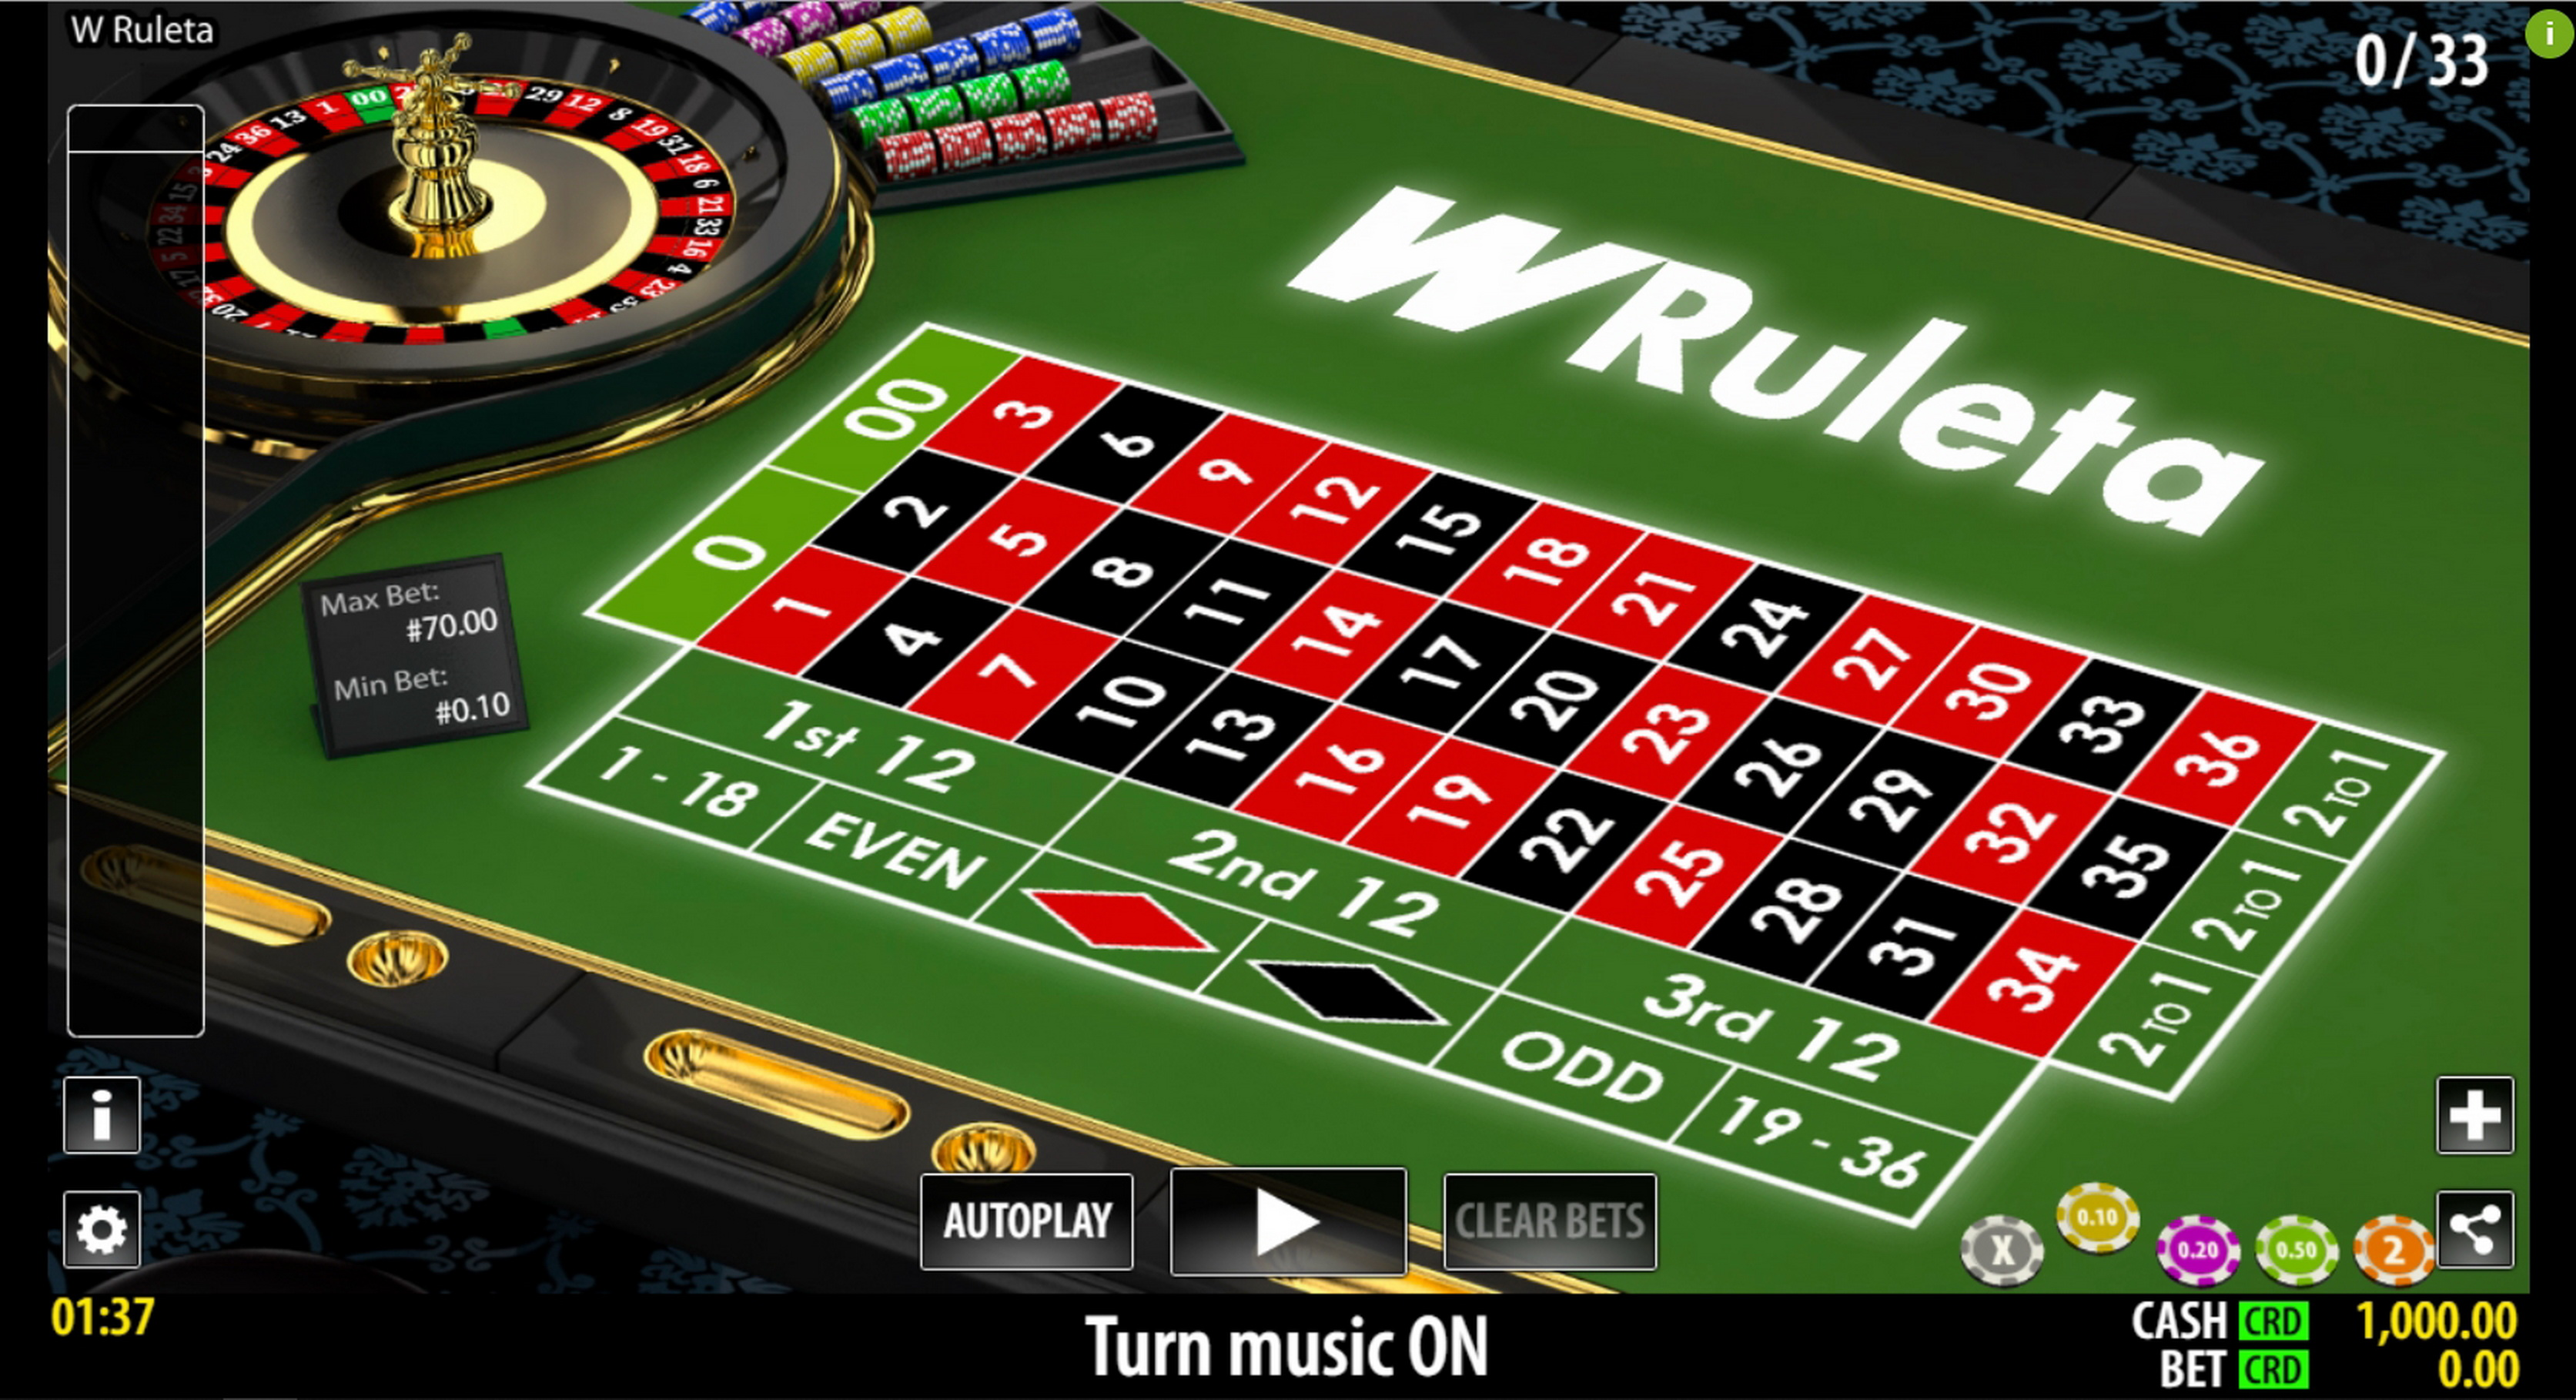 Reels in W Ruleta (World Match) Slot Game by World Match